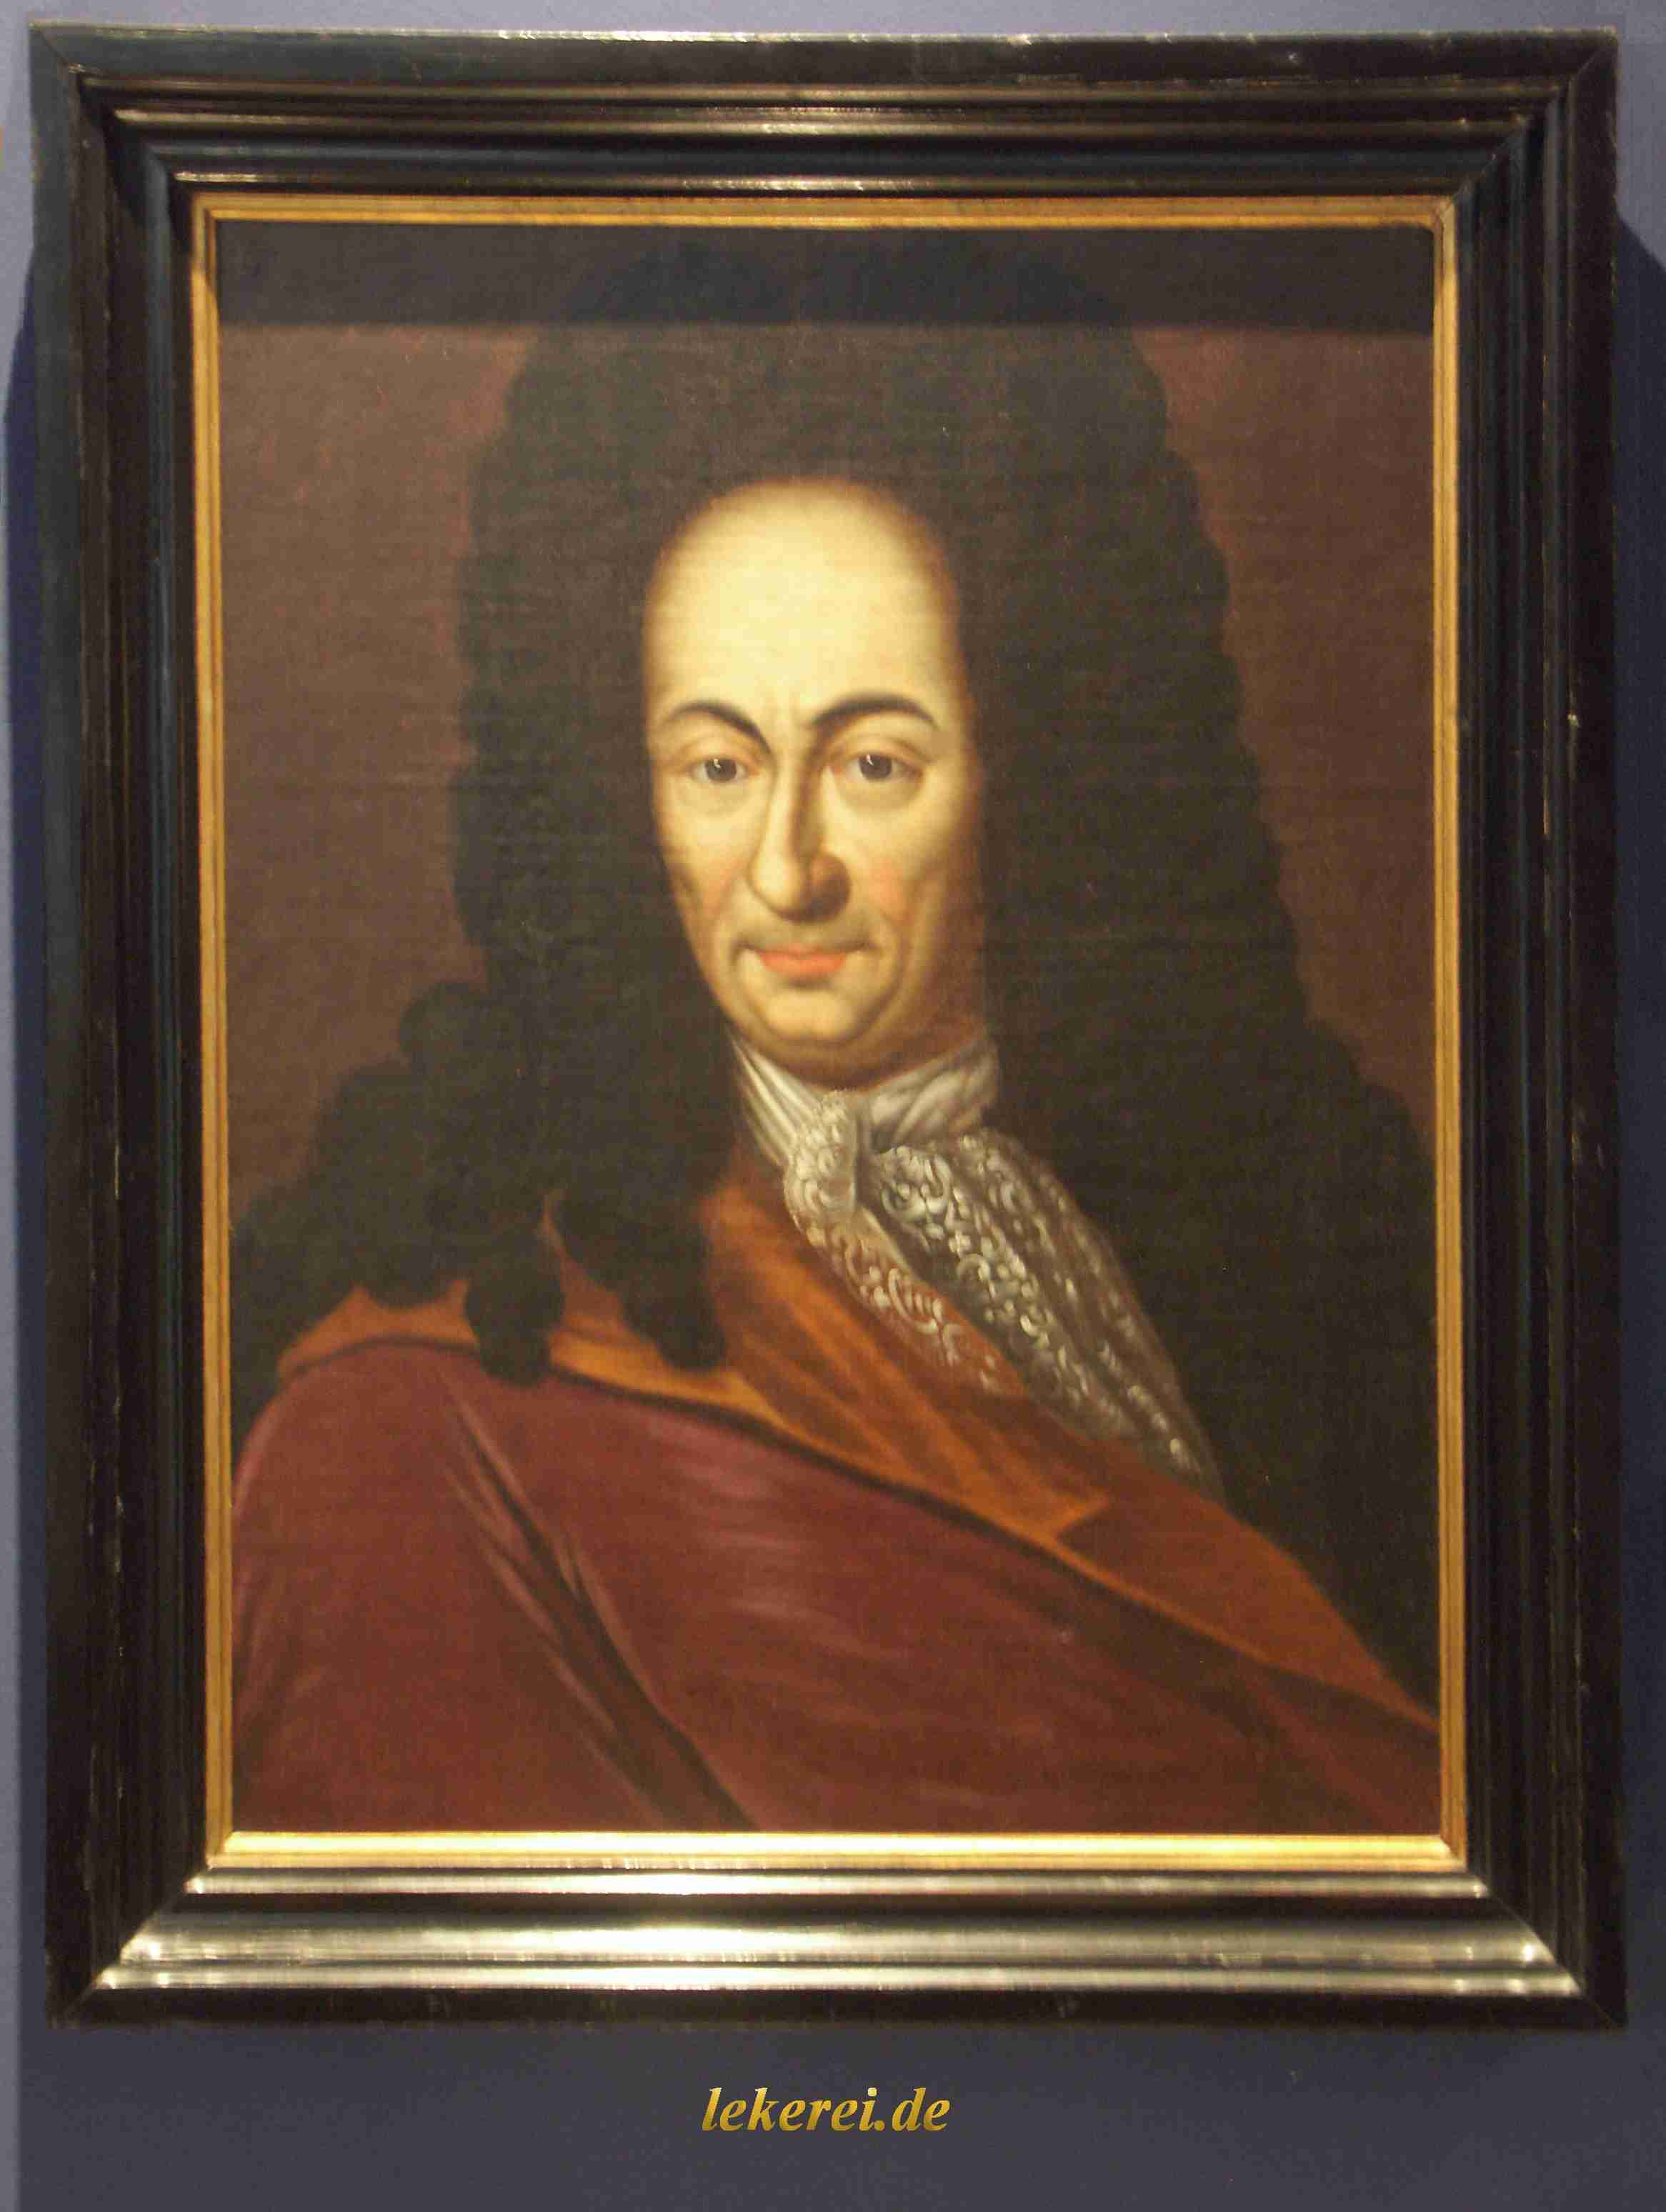 gottfried leibniz Gottfried wilhelm leibniz (also leibnitz or von leibniz) 1 july 1 (21 june os) 1646 – 14 november 1716) was a german intellectual who wrote mostly in french and latinhe played an important role in both philosophy and mathematics.